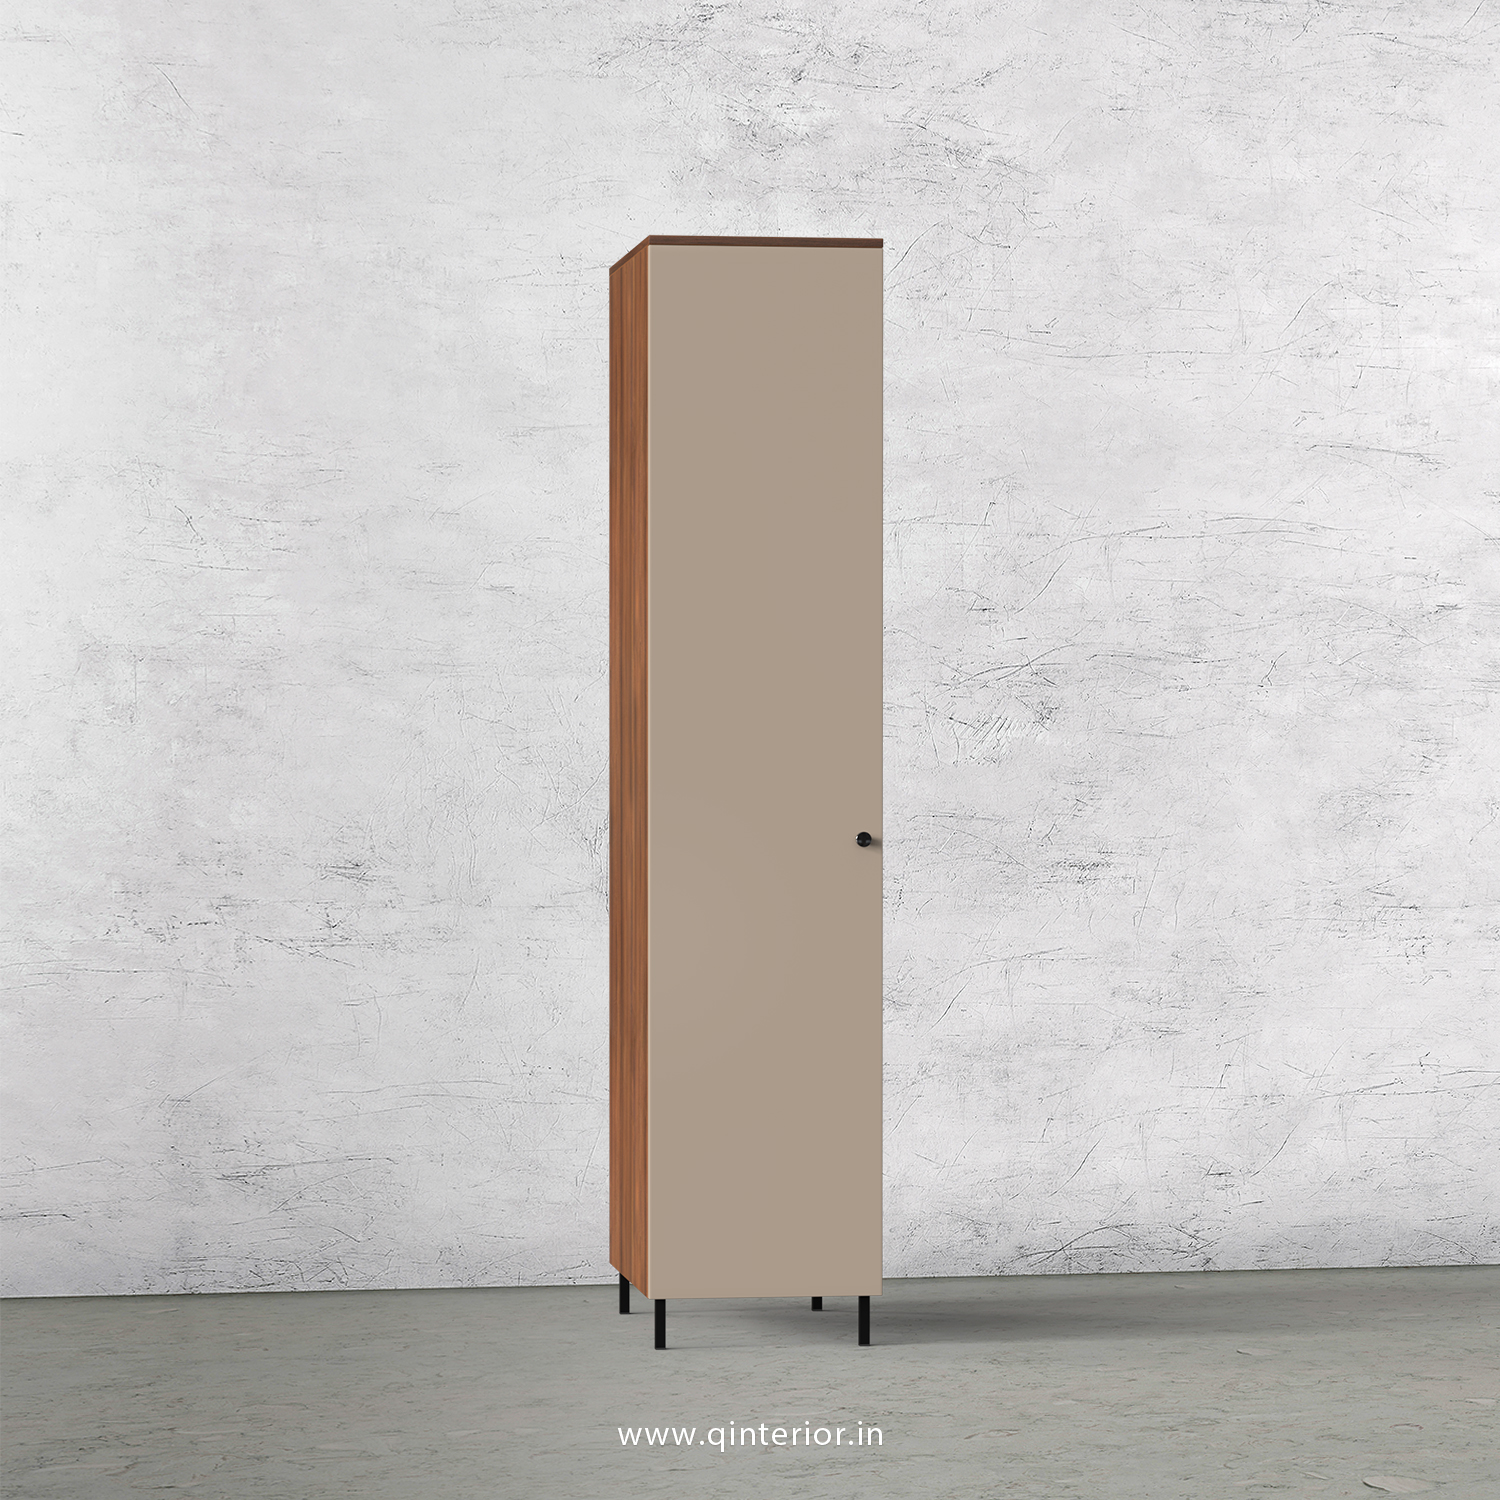 Lambent 1 Door Wardrobe in Teak and Cappuccino Finish – SWRD001 C20